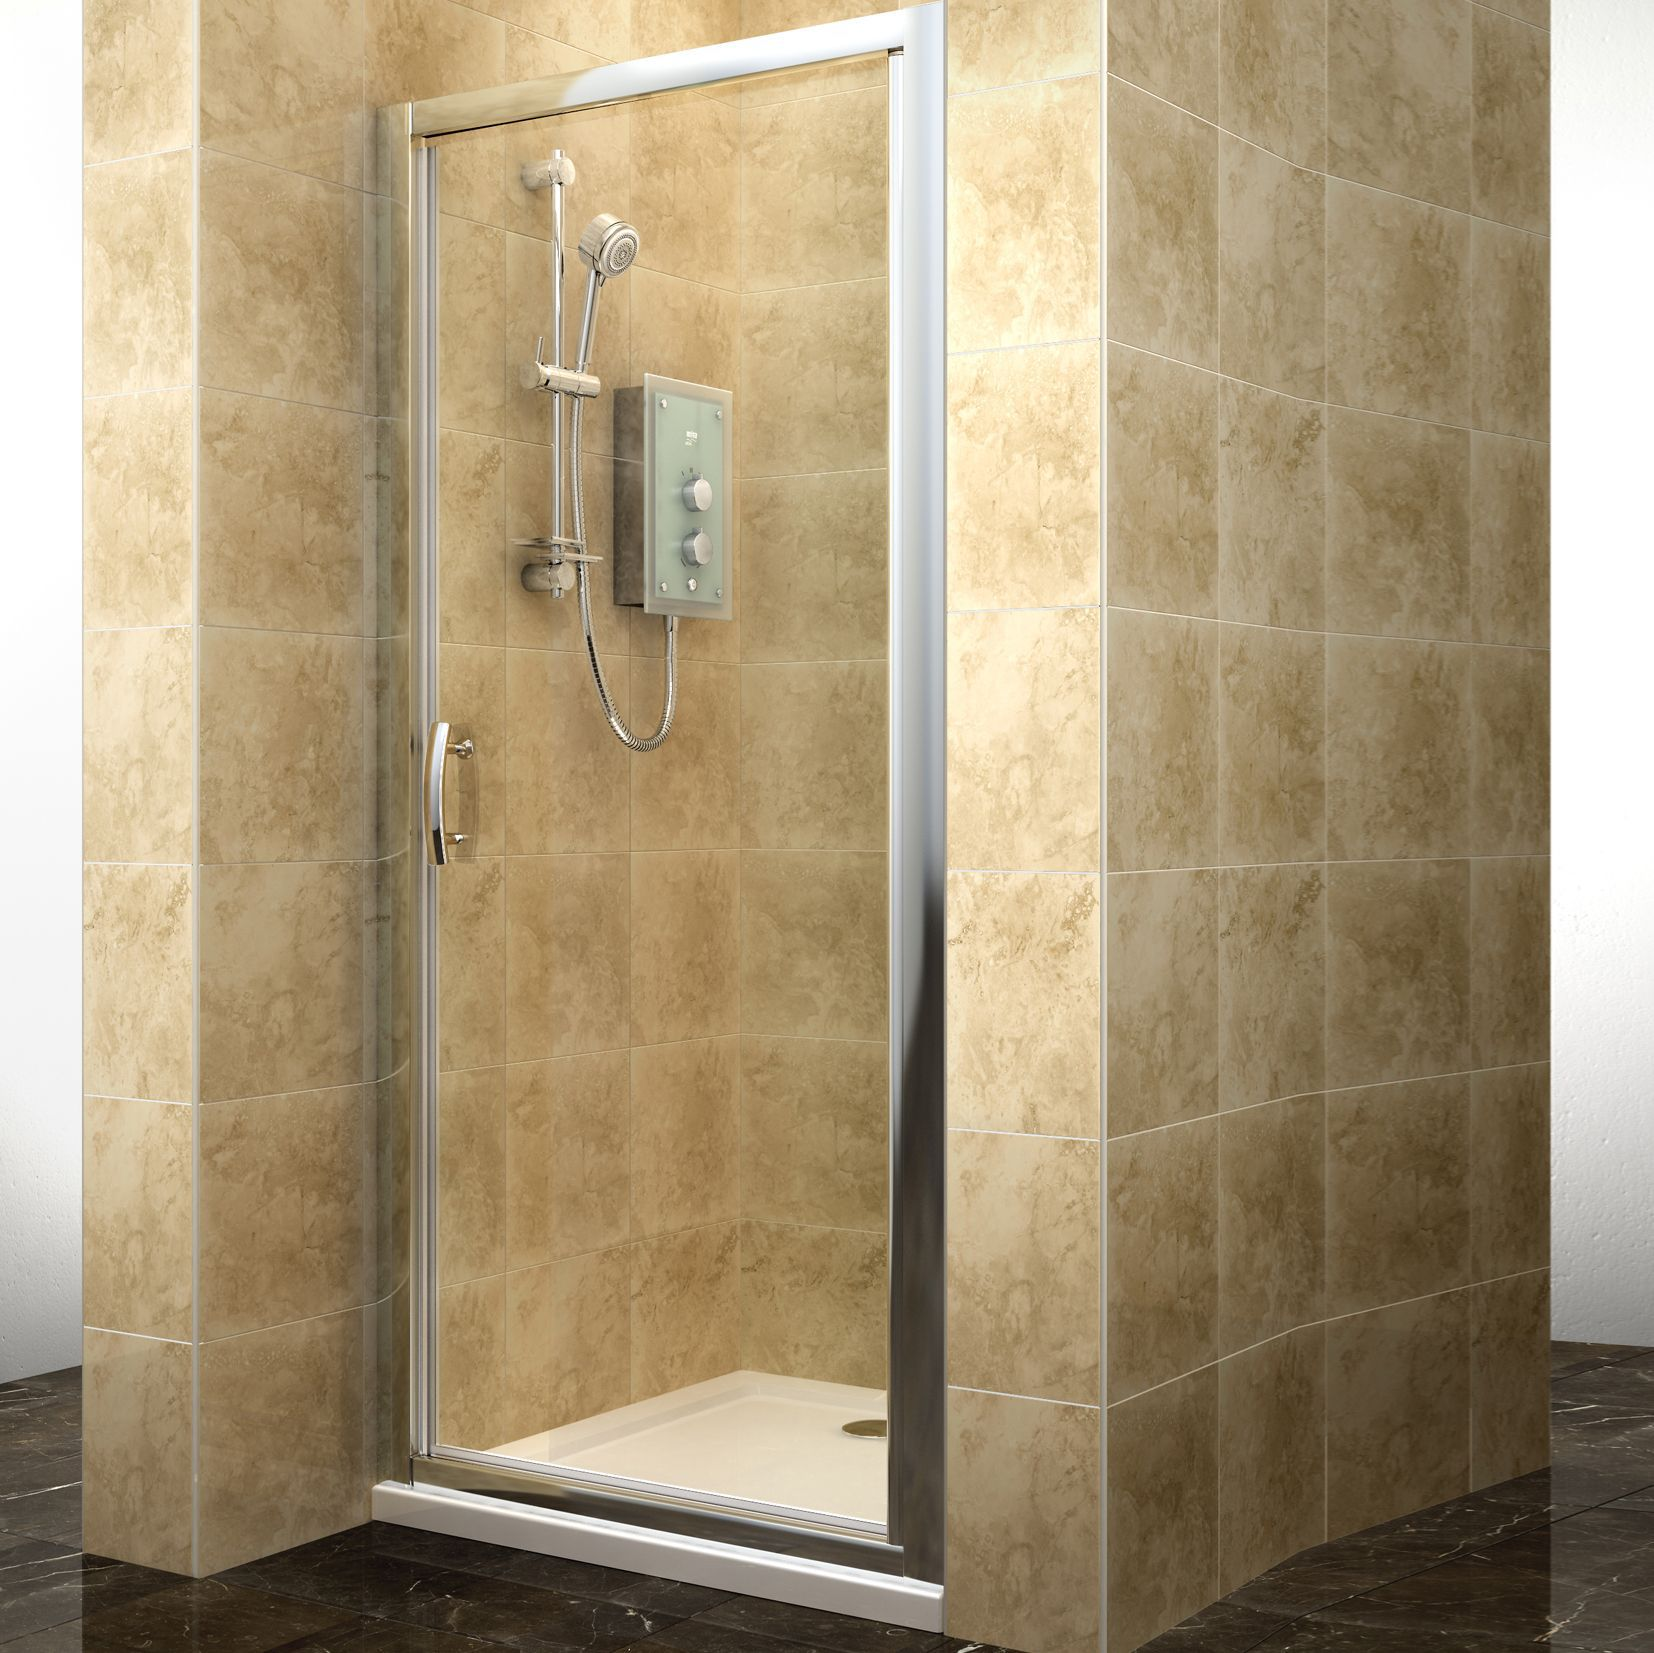 B And Q Shower Doors B And Q Shower Doors Cooke Lewis